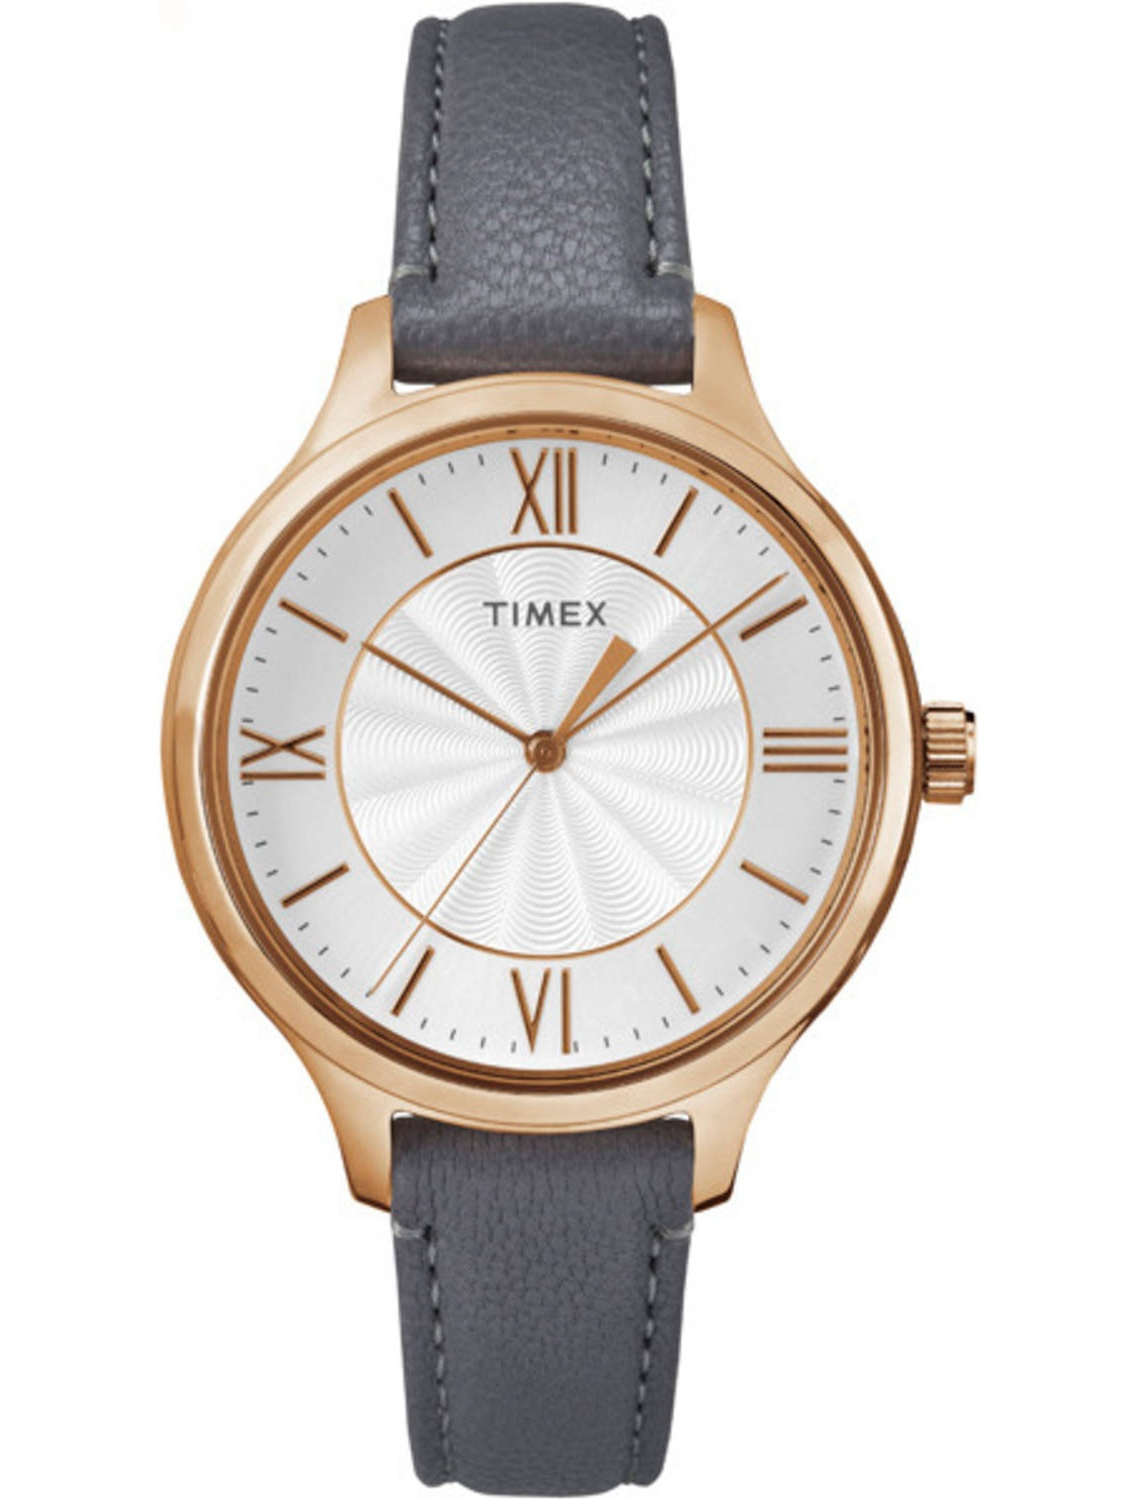 Timex Women's Peyton Rose Gold-Tone Watch, Gray Leather Strap